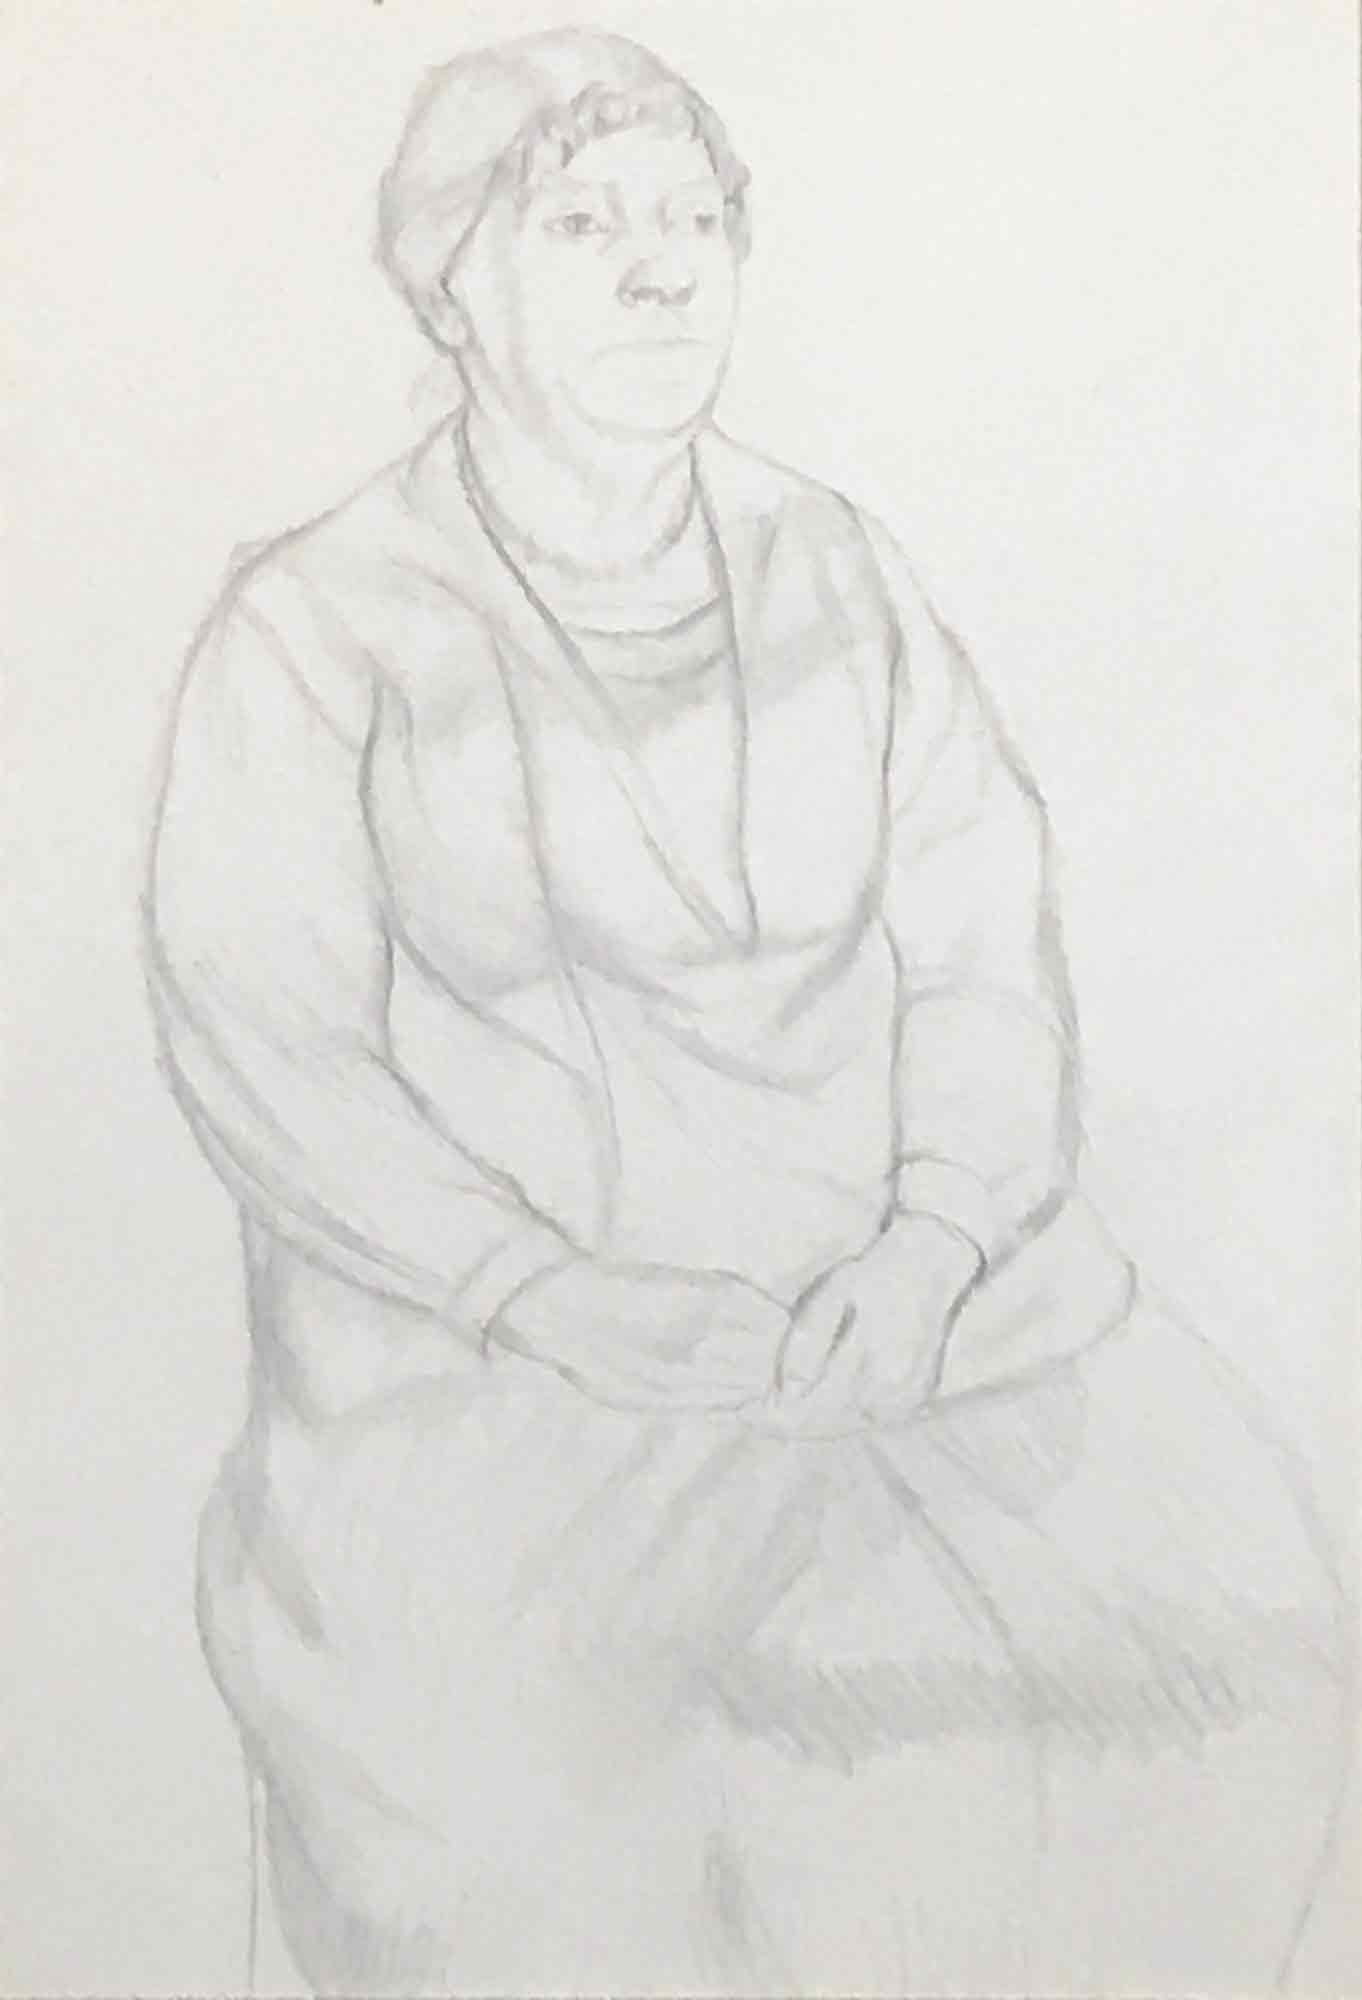 Dorothy Hepworth 'Pencil drawing of an elderly lady'